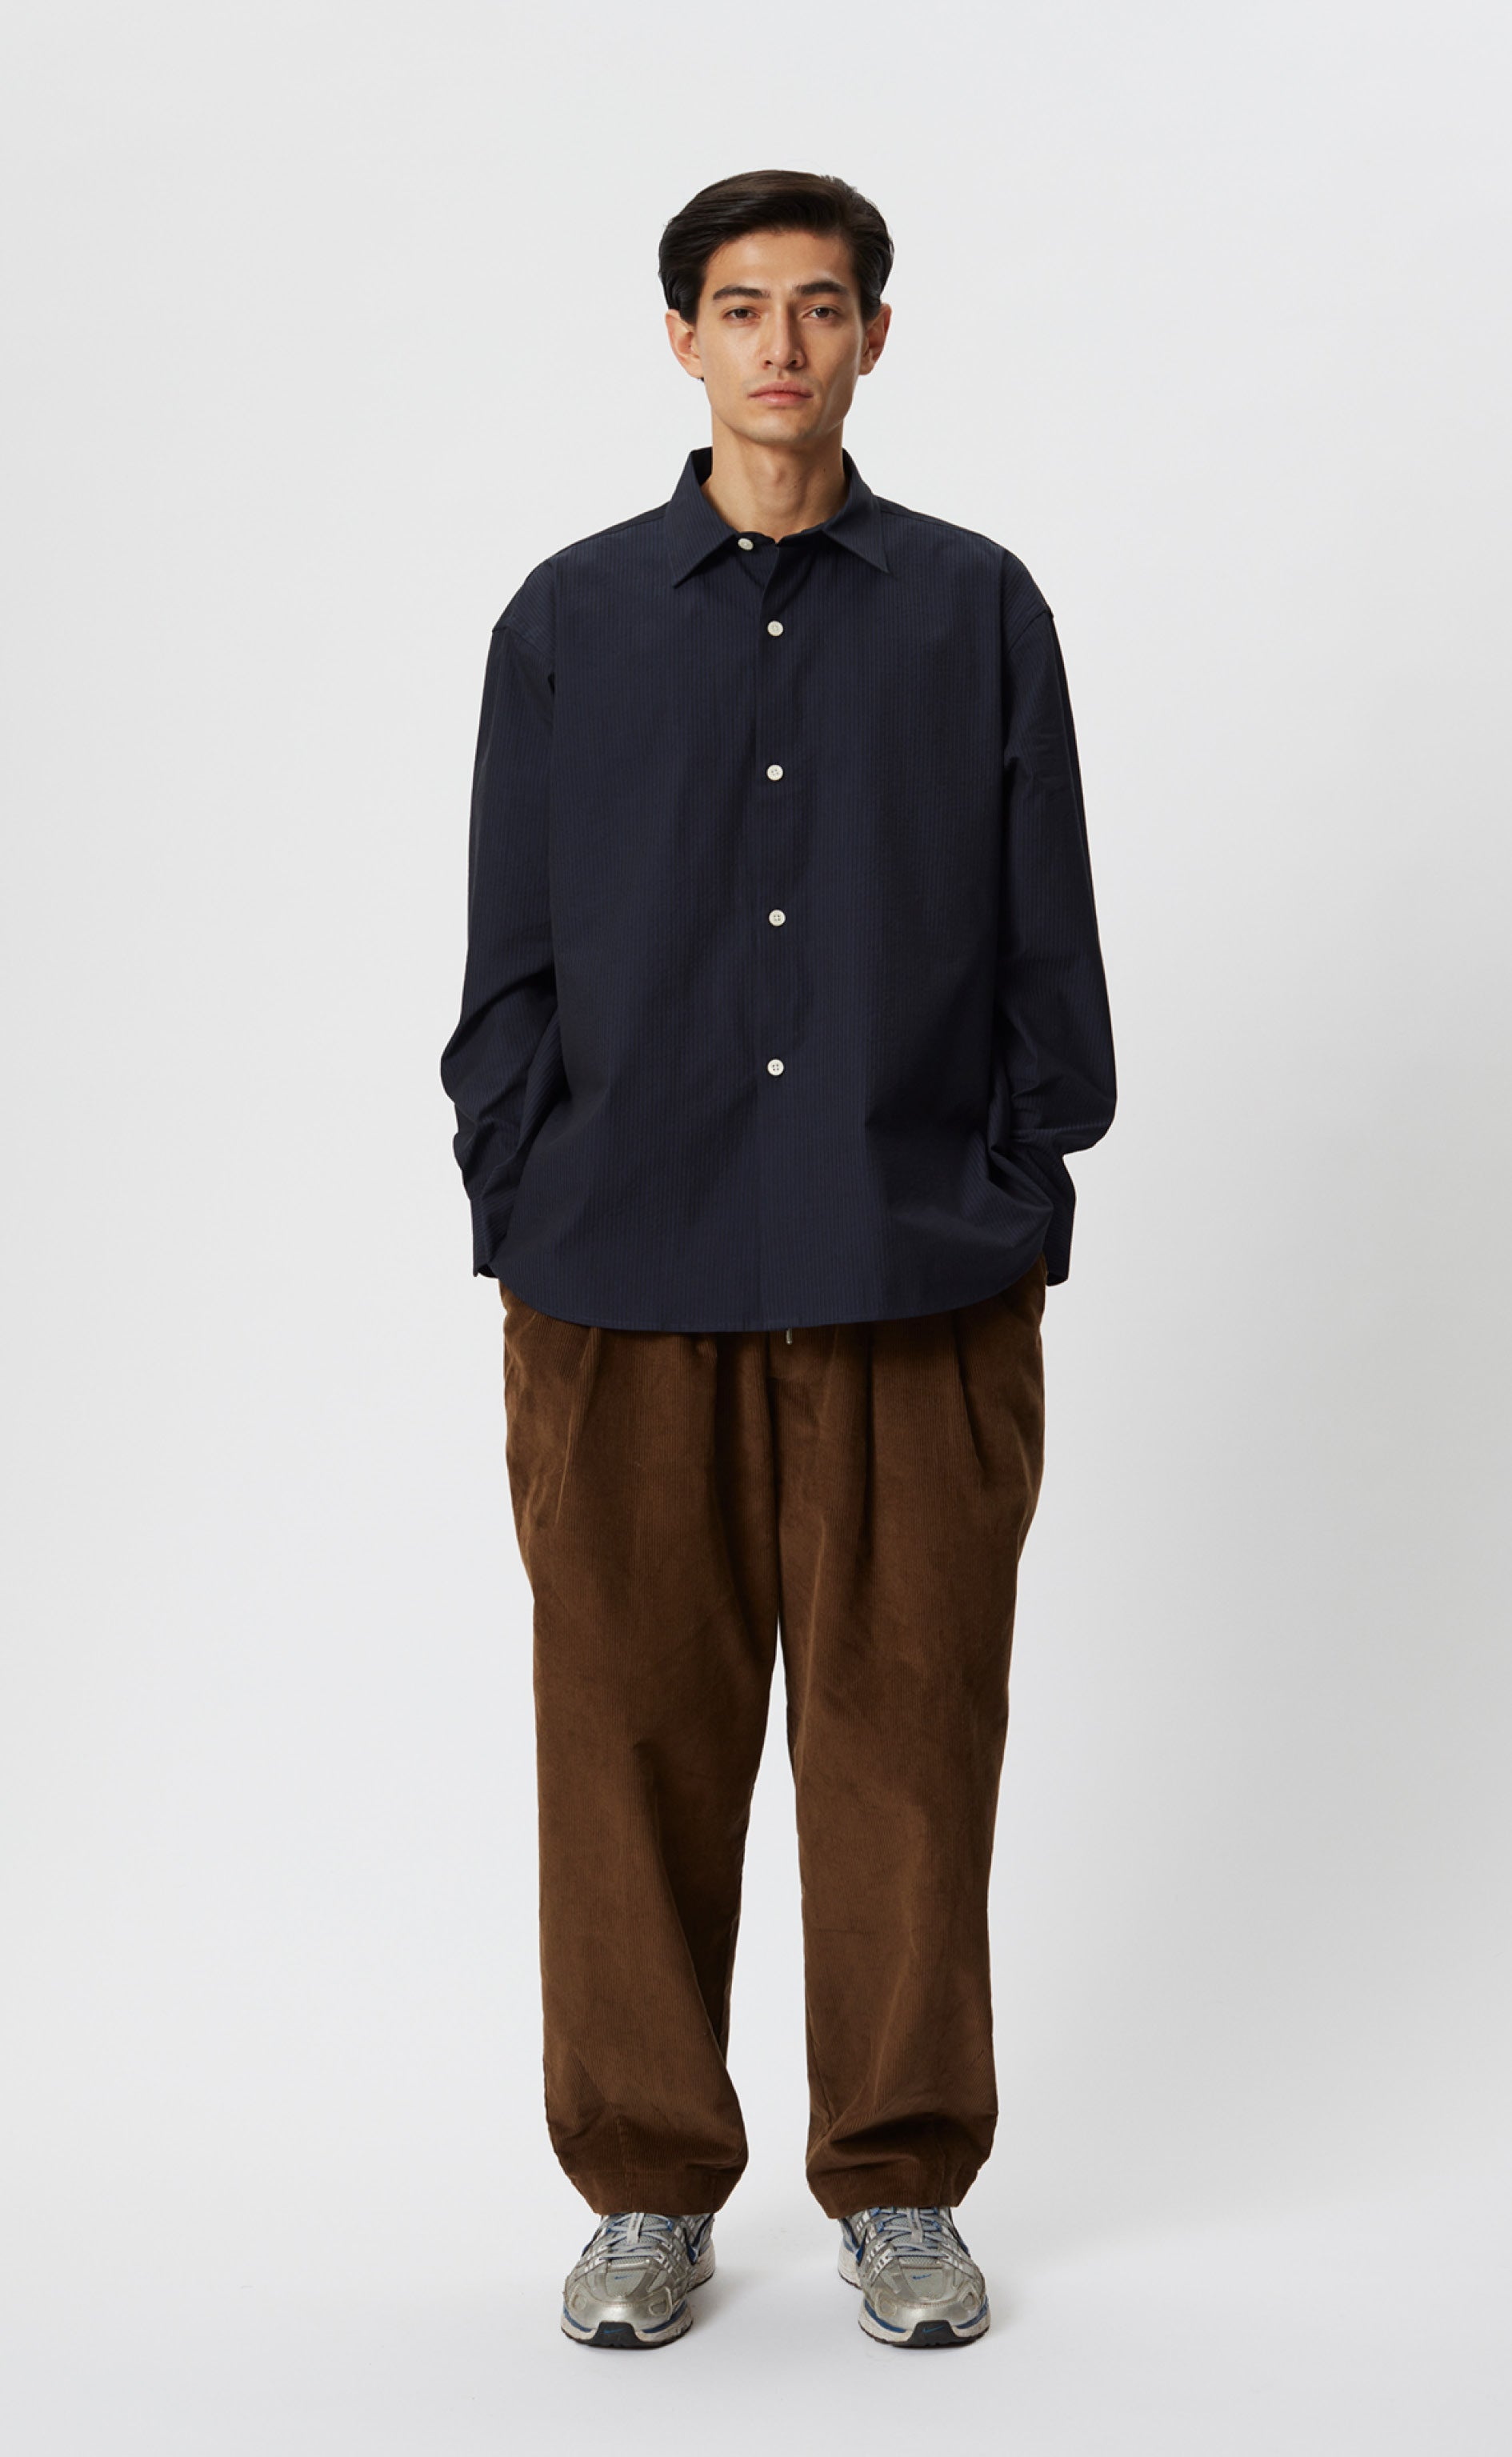 GENEROUS SHIRT - BLACK NAVY STRIPE